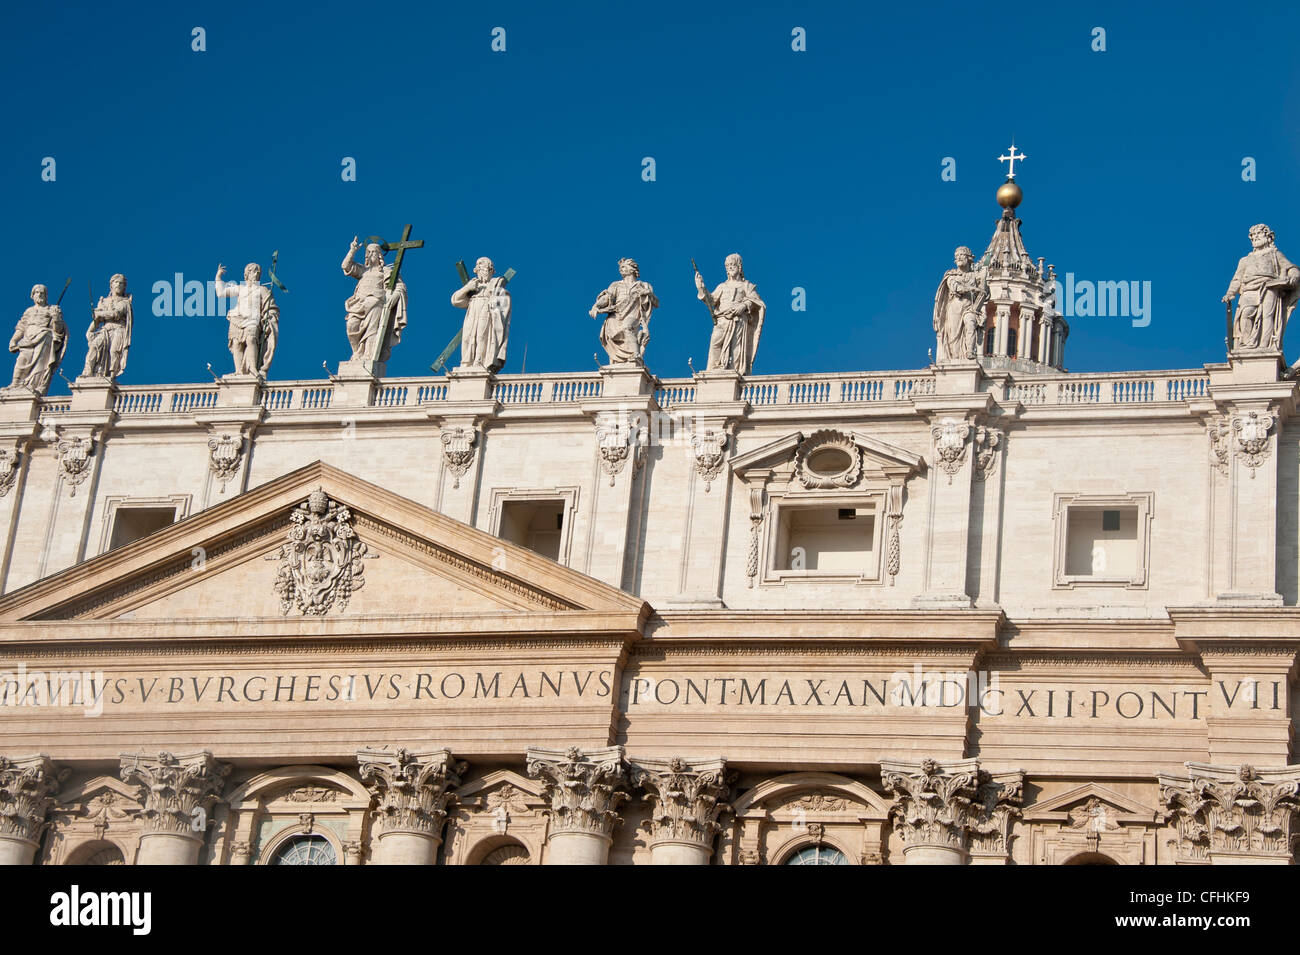 Statues of Saints on the roof of St. Peter's Basilica in Vatican City, Rome, Italy. - Stock Image